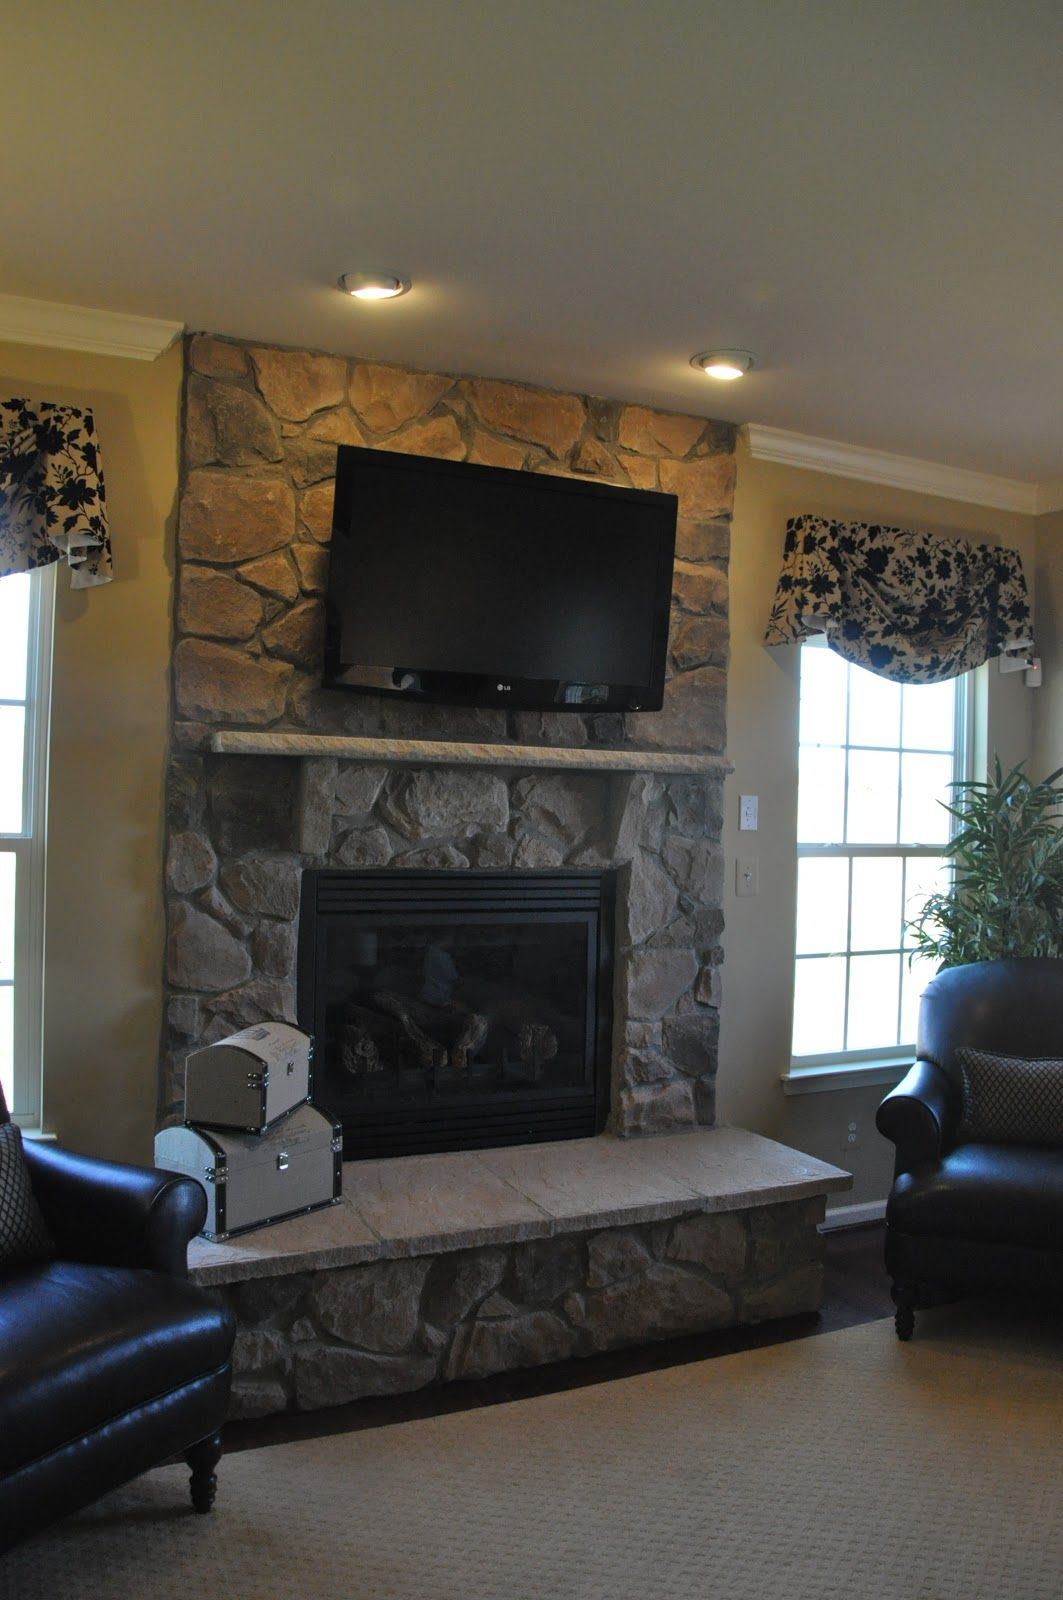 Building A Ryan Homes Ravenna Tv Over The Fireplace Or